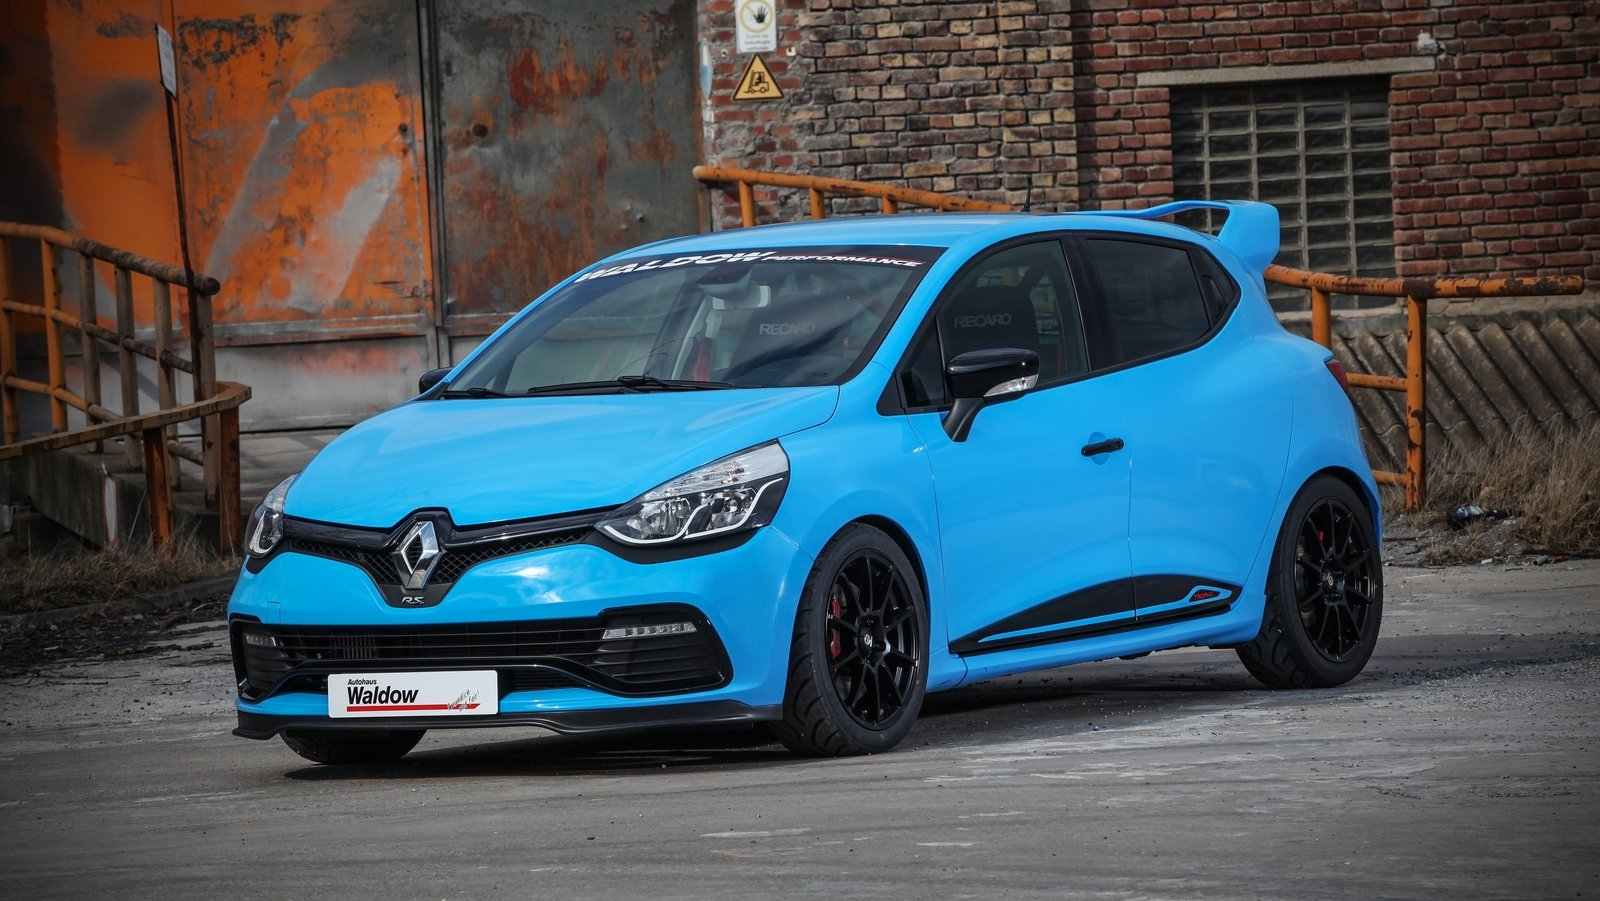 2016 renault clio 220 trophy edc by waldow performance. Black Bedroom Furniture Sets. Home Design Ideas